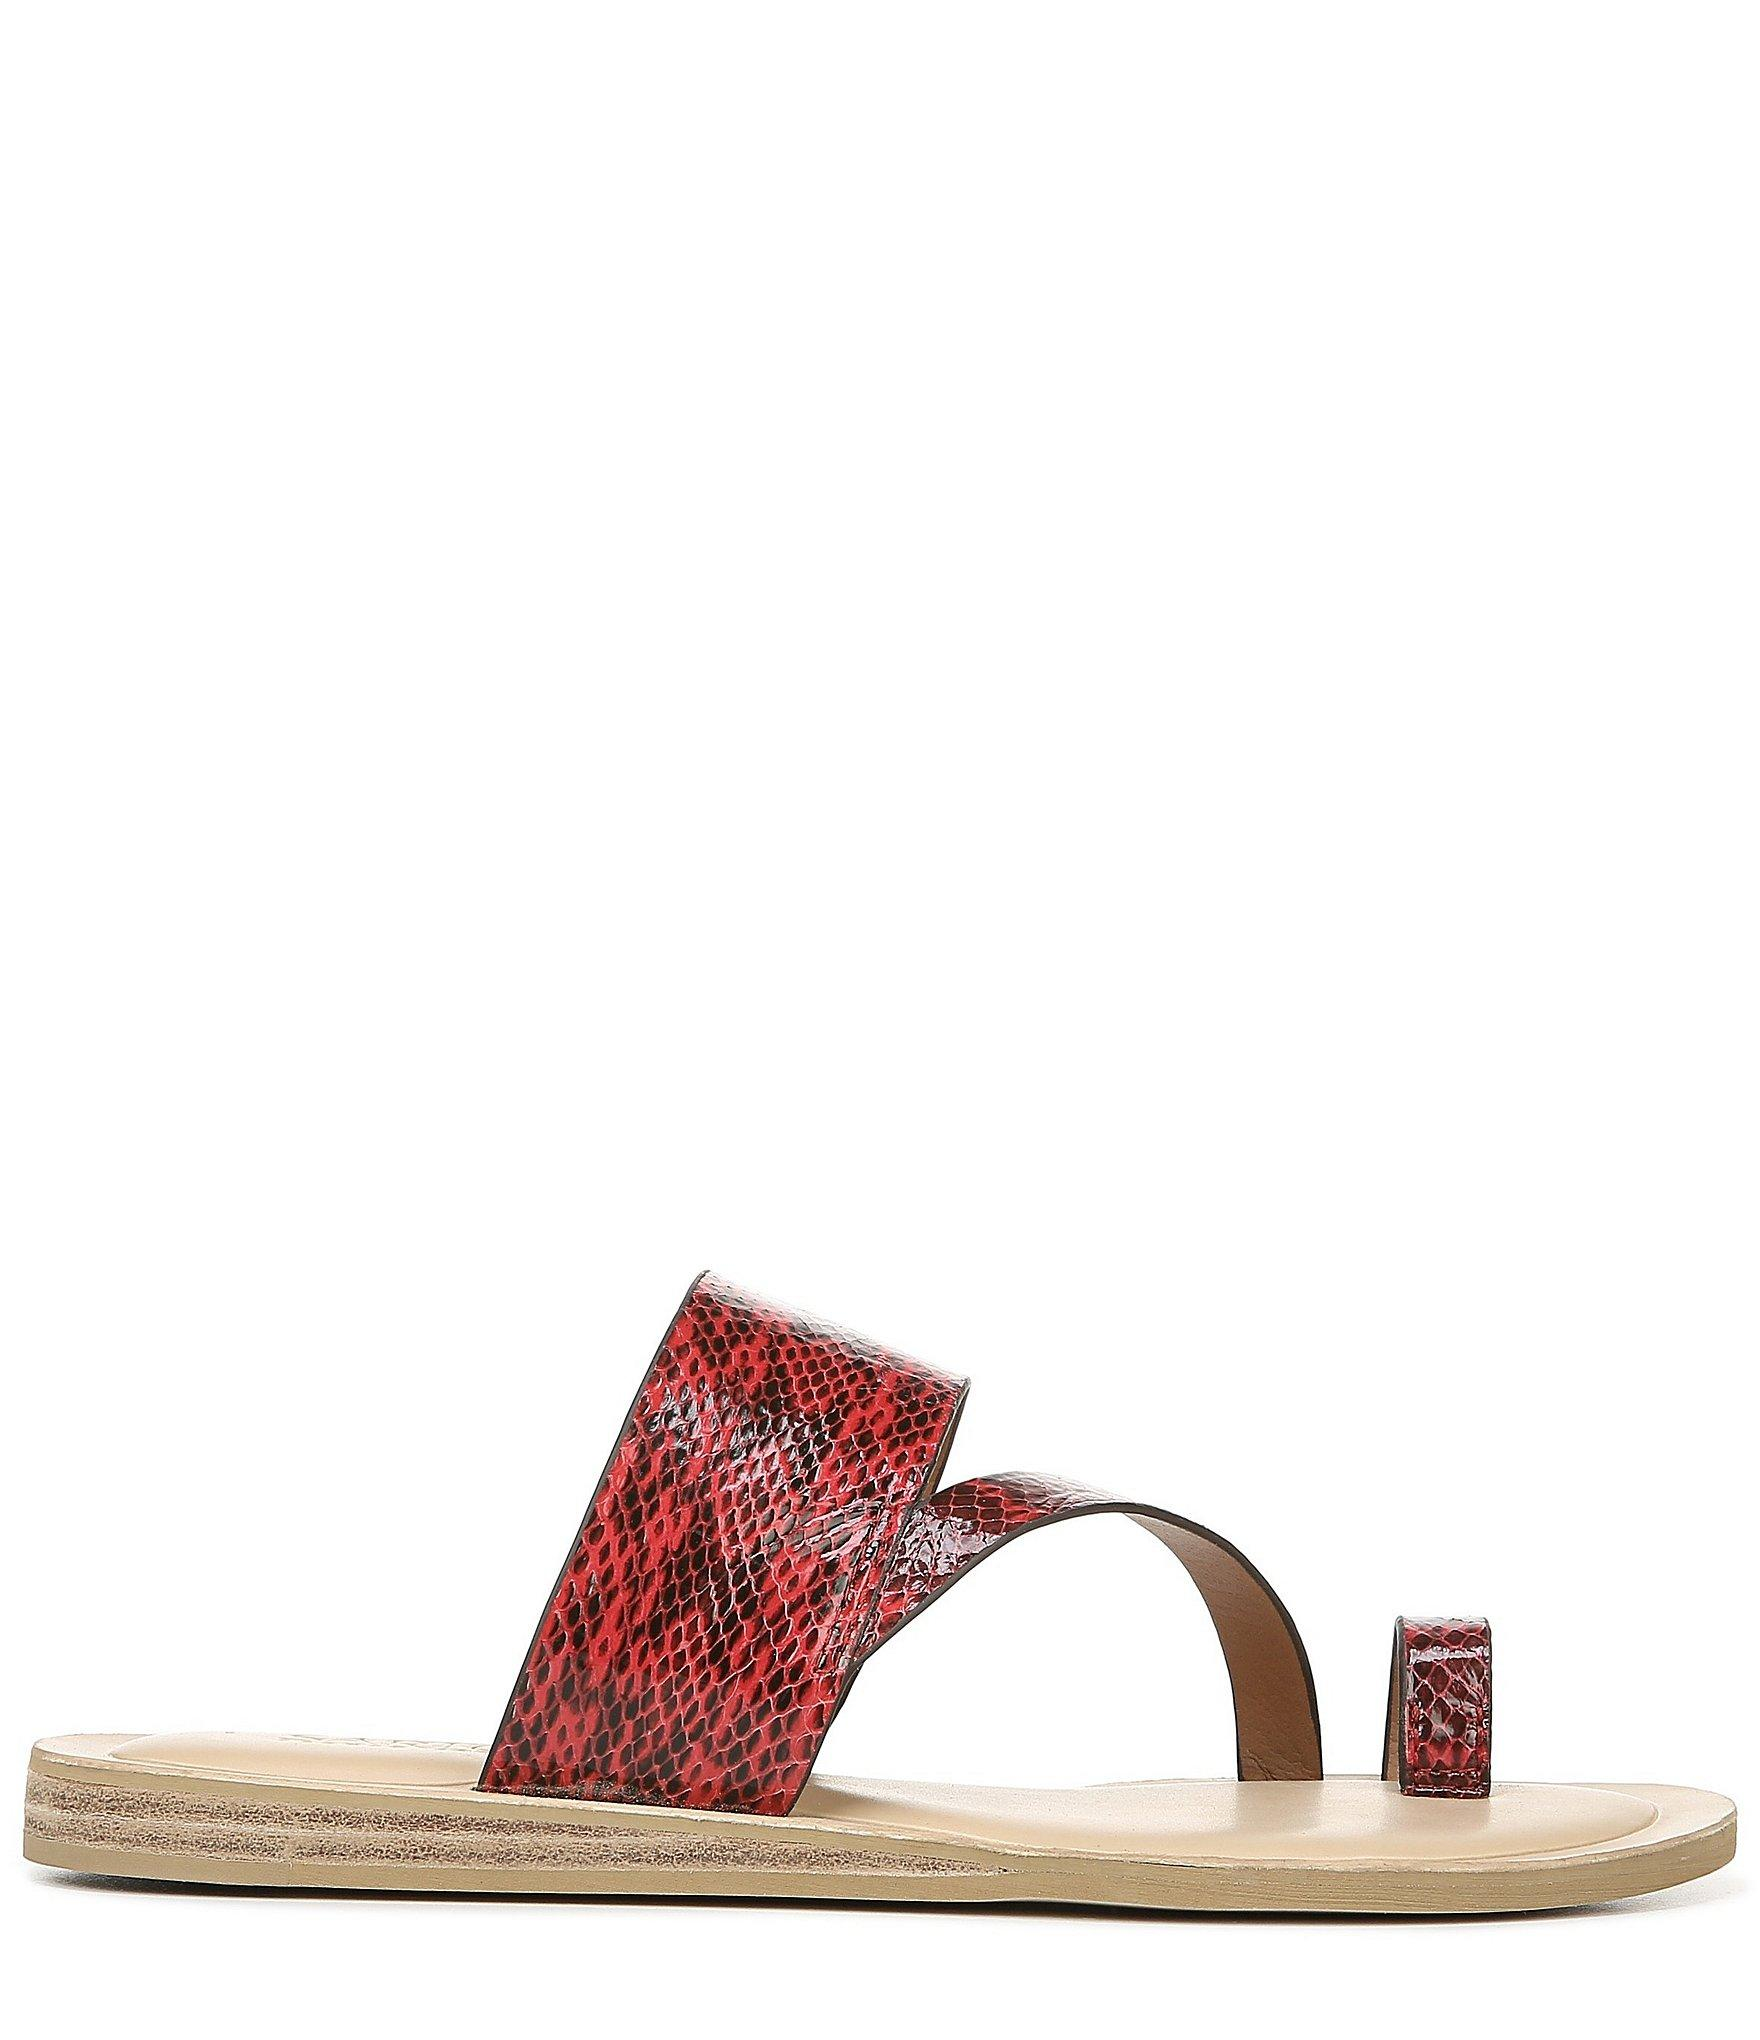 a1a58e880 Franco Sarto - Red Sarto By Leila Snake Print Leather Toe Ring Sandals -  Lyst. View fullscreen